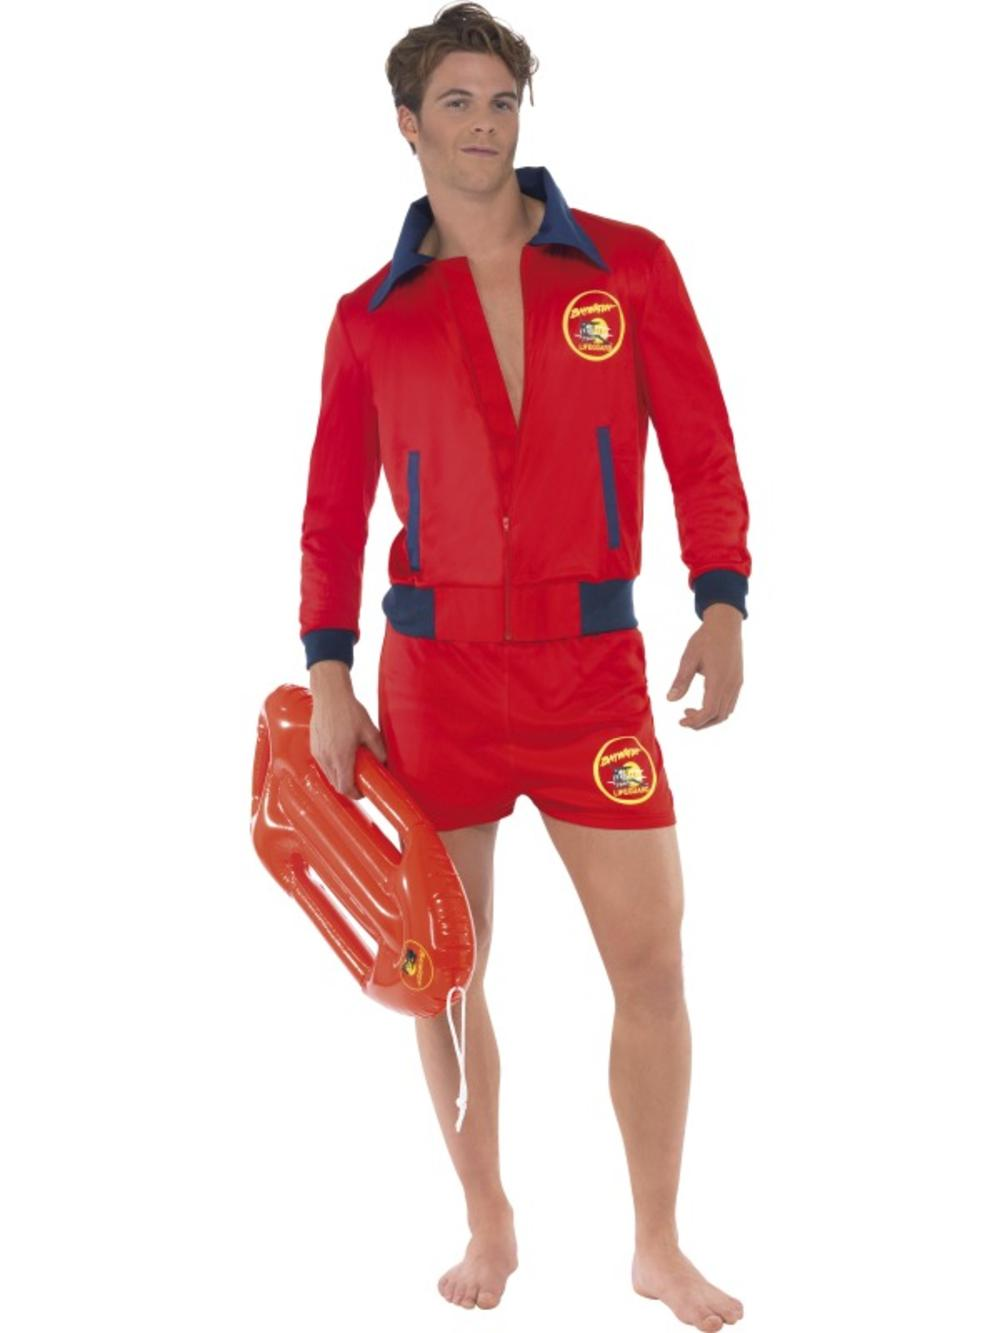 Men's Baywatch Lifeguard Jacket & Shorts Fancy Dress Adult Costume TV Outfit New